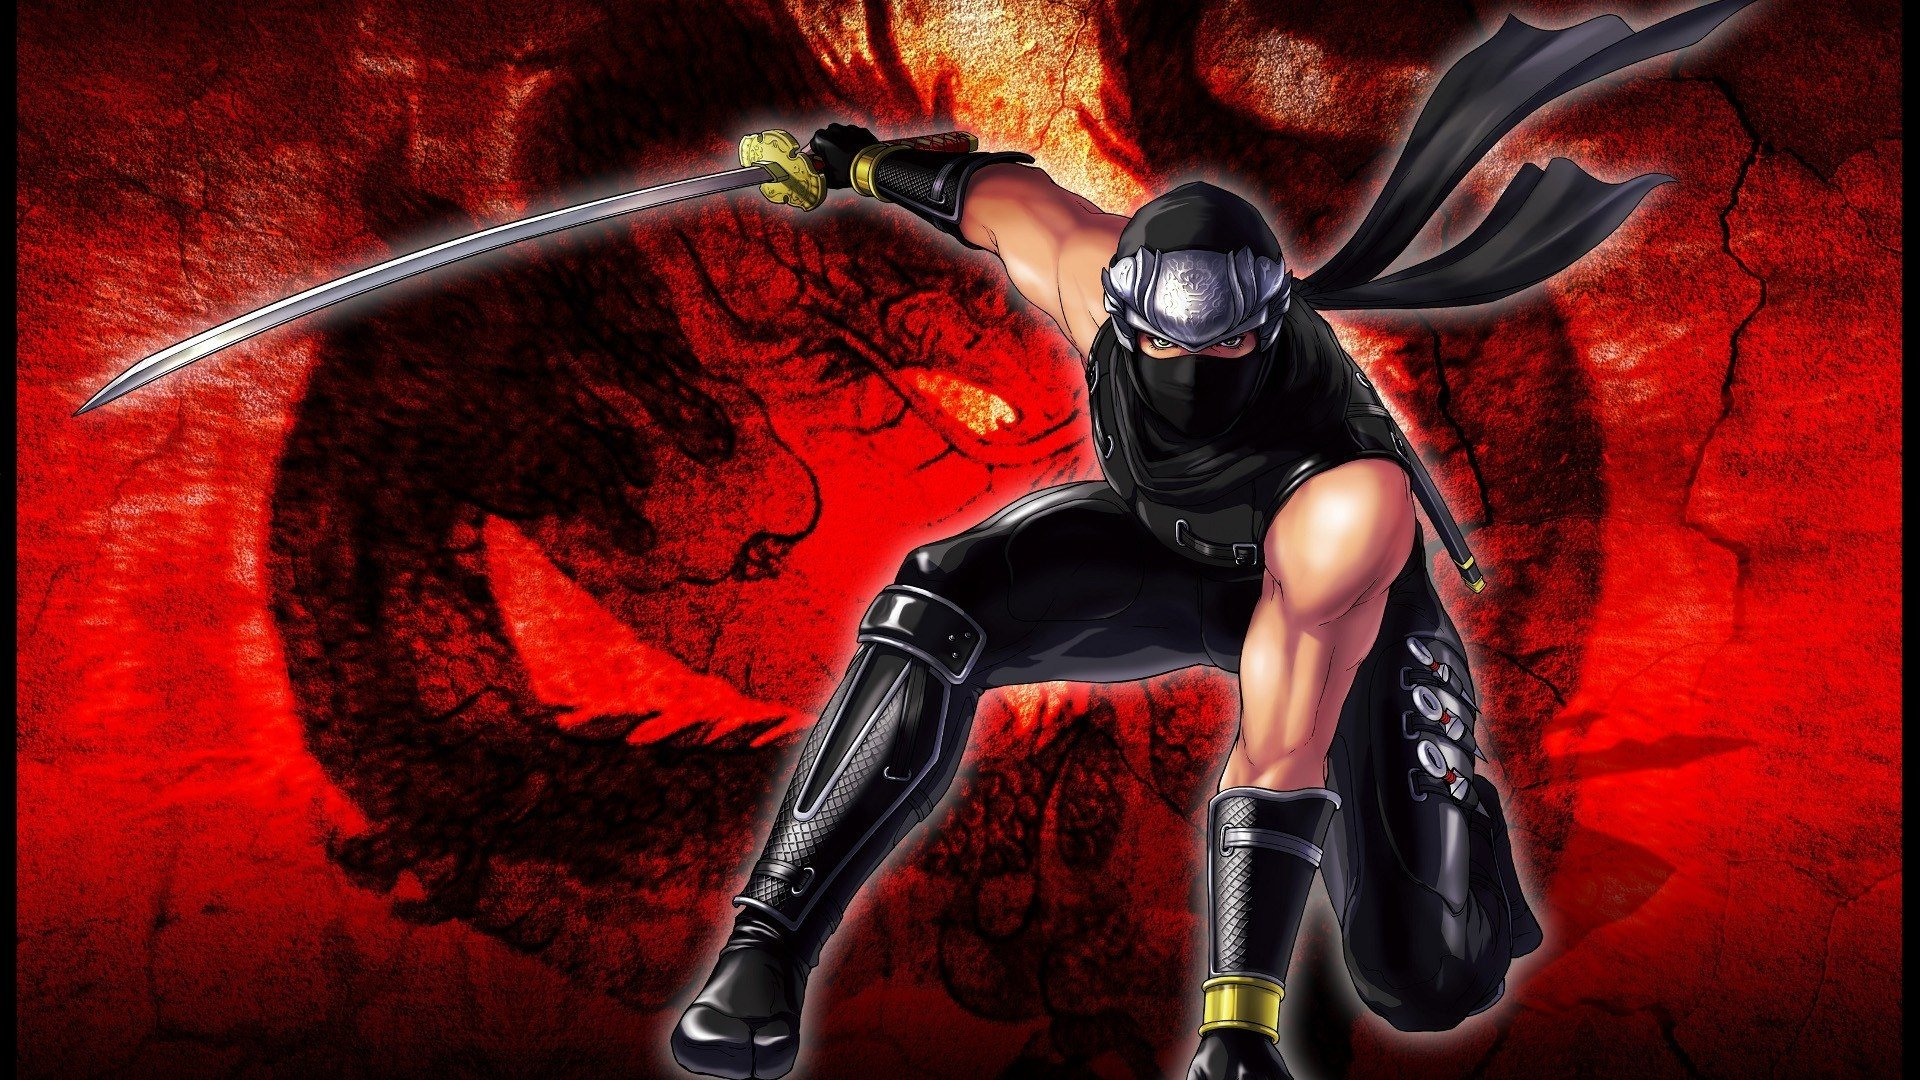 ninja gaiden dragon sword full hd wallpaper and background image